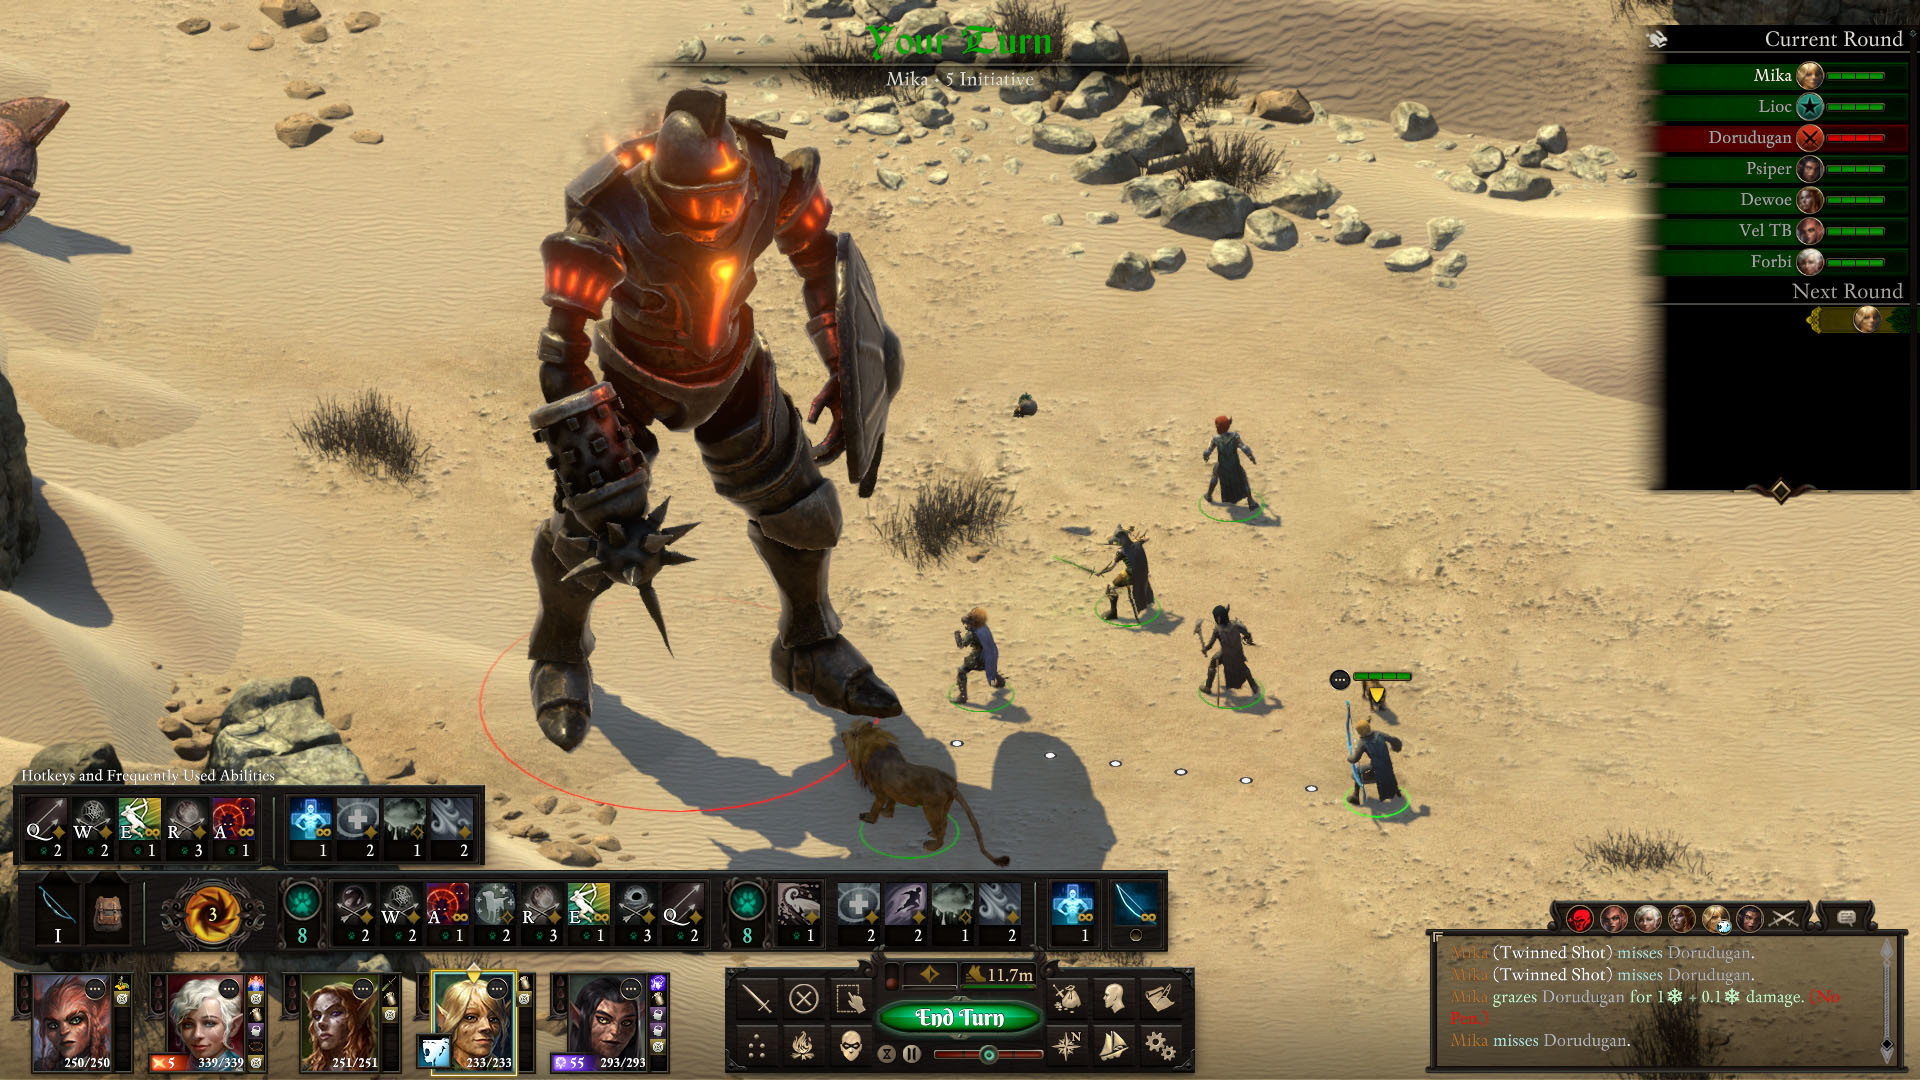 Obsidian's Pillars of Eternity 2 will get turn-based combat in free